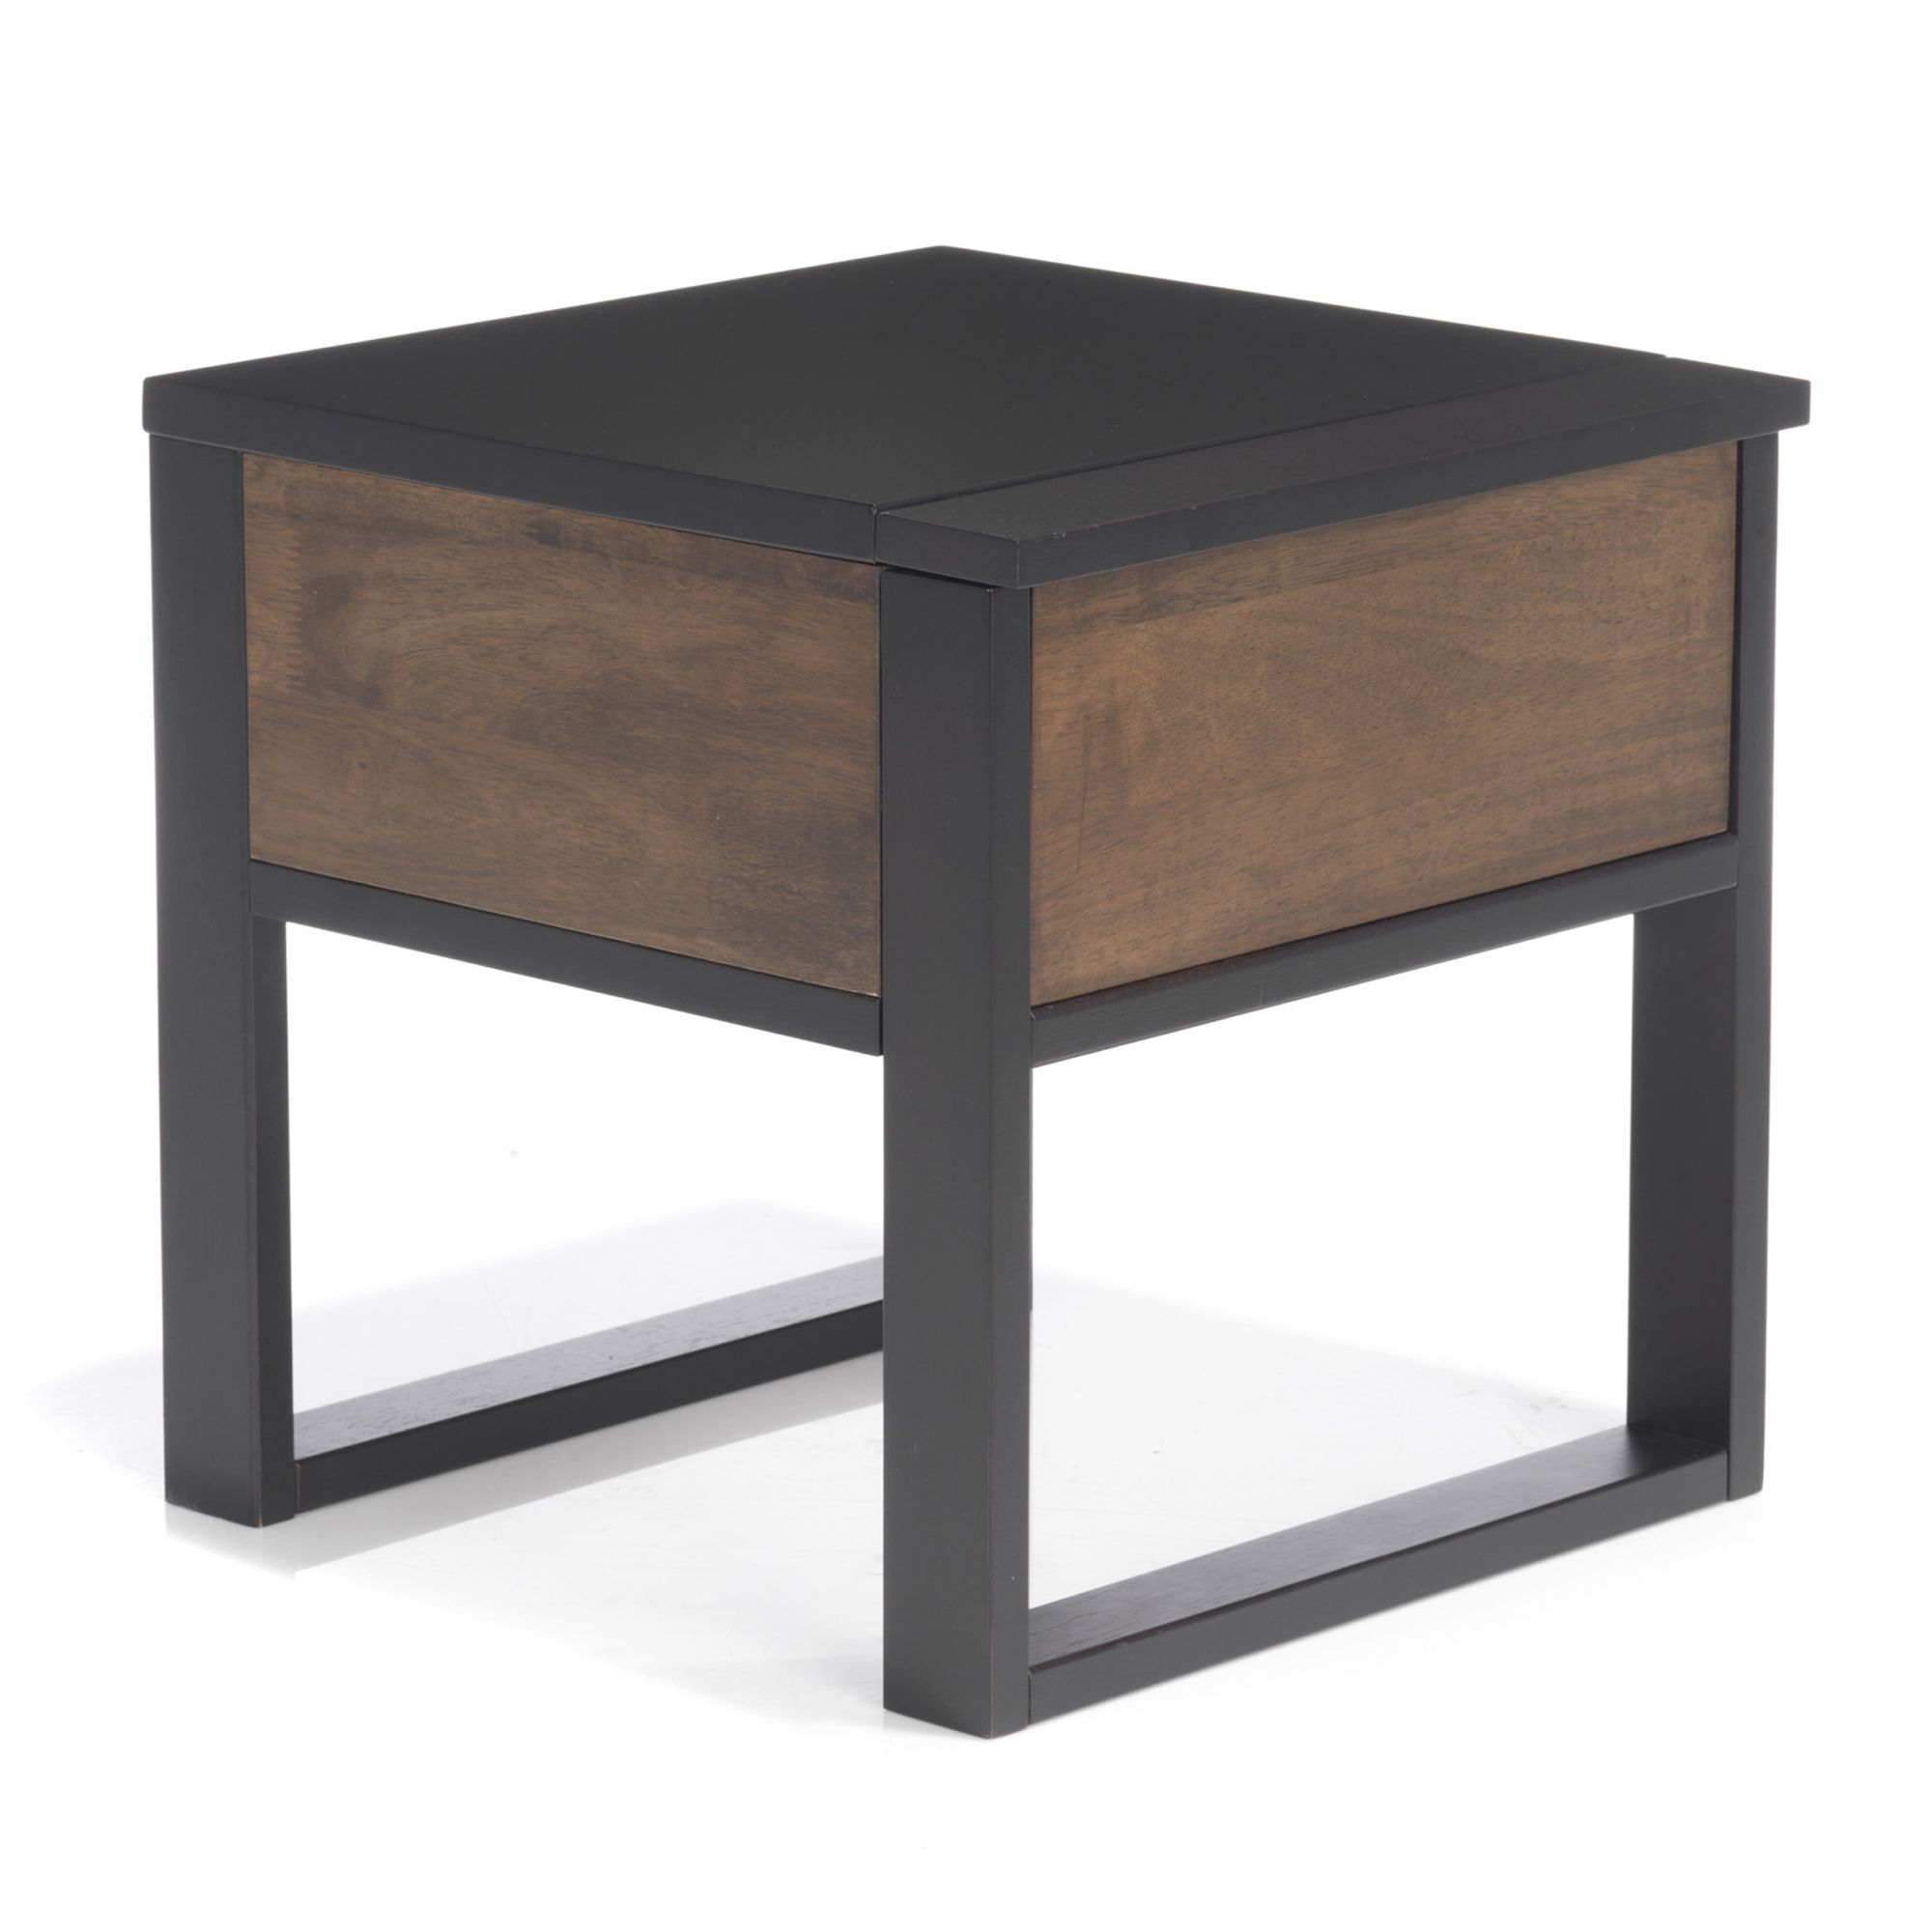 Table De Chevet 1 Tiroir Noyer Dore Et Wenge Spirit Tables De Chevet Tous Les Meuble Table De Chevet Grise Table De Chevet Blanche Table De Chevet Design